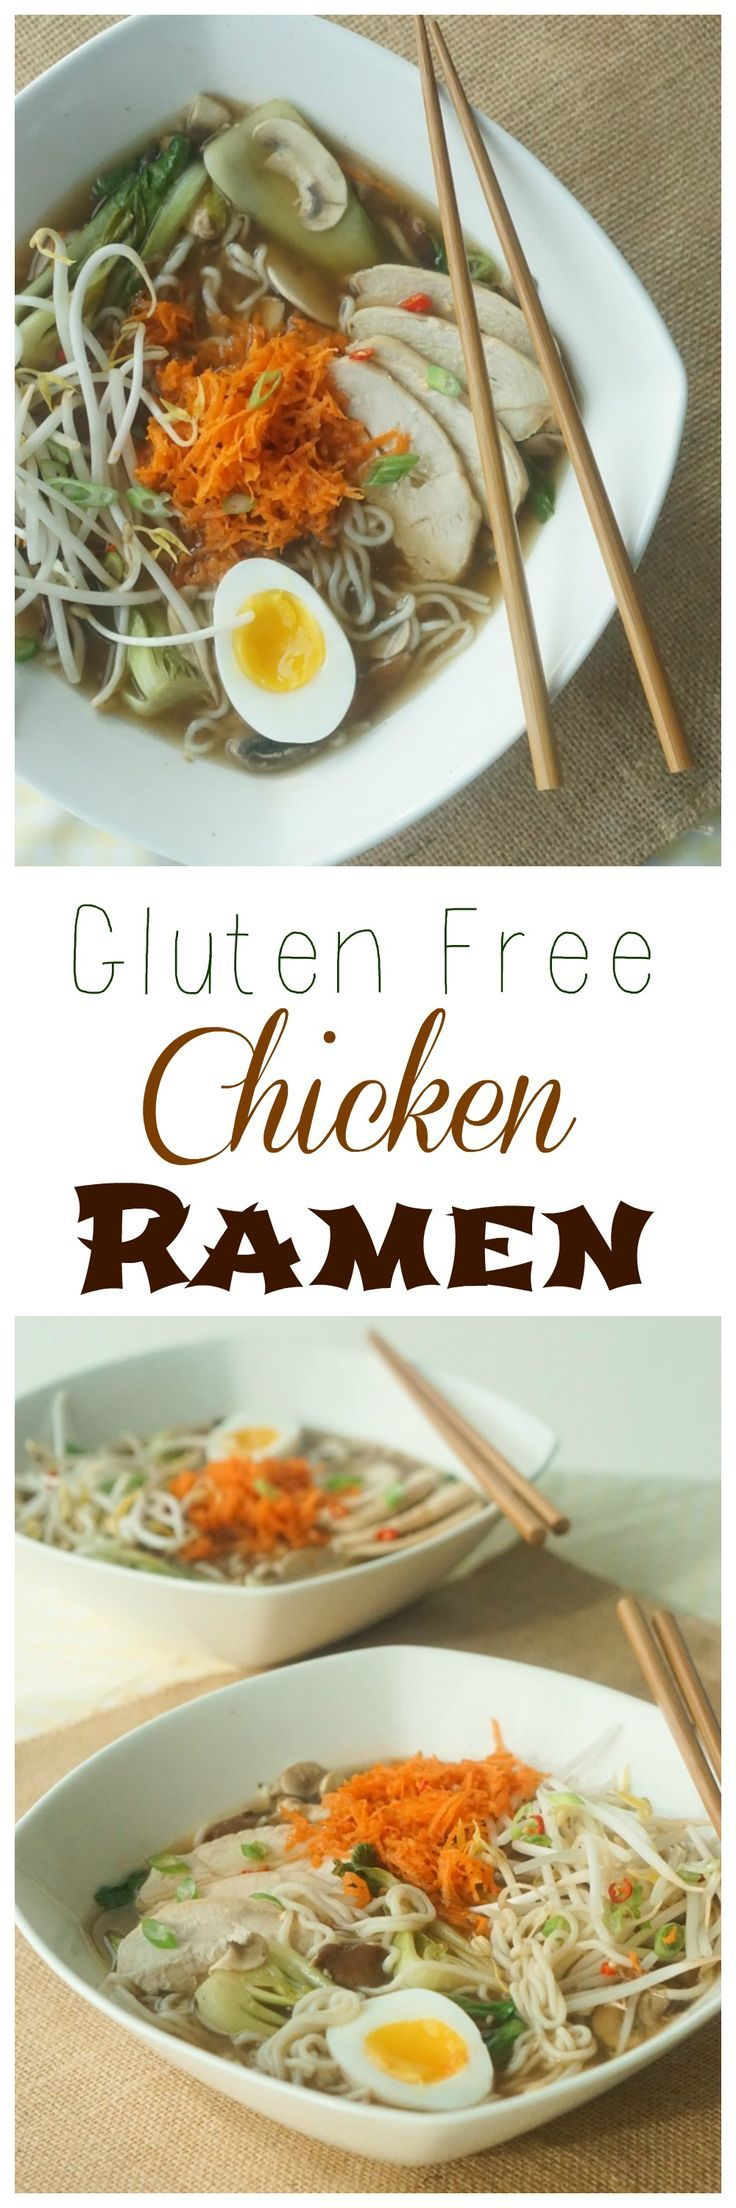 Chicken Breast Recipes Healthy Clean Eating Low Carb